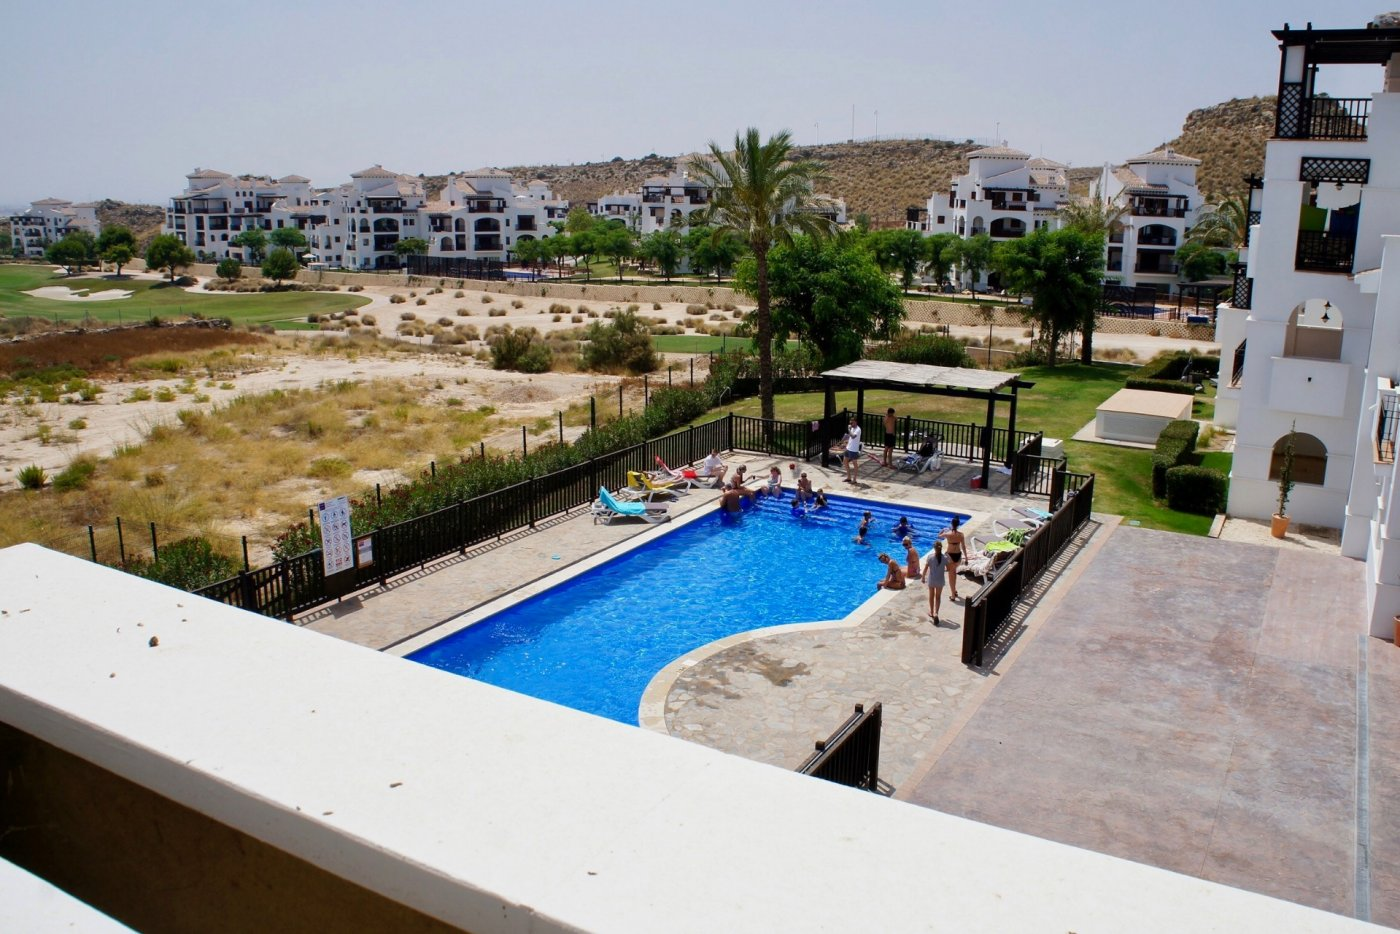 Apartment ref 3265-02943 for sale in El Valle Golf Resort Spain - Quality Homes Costa Cálida